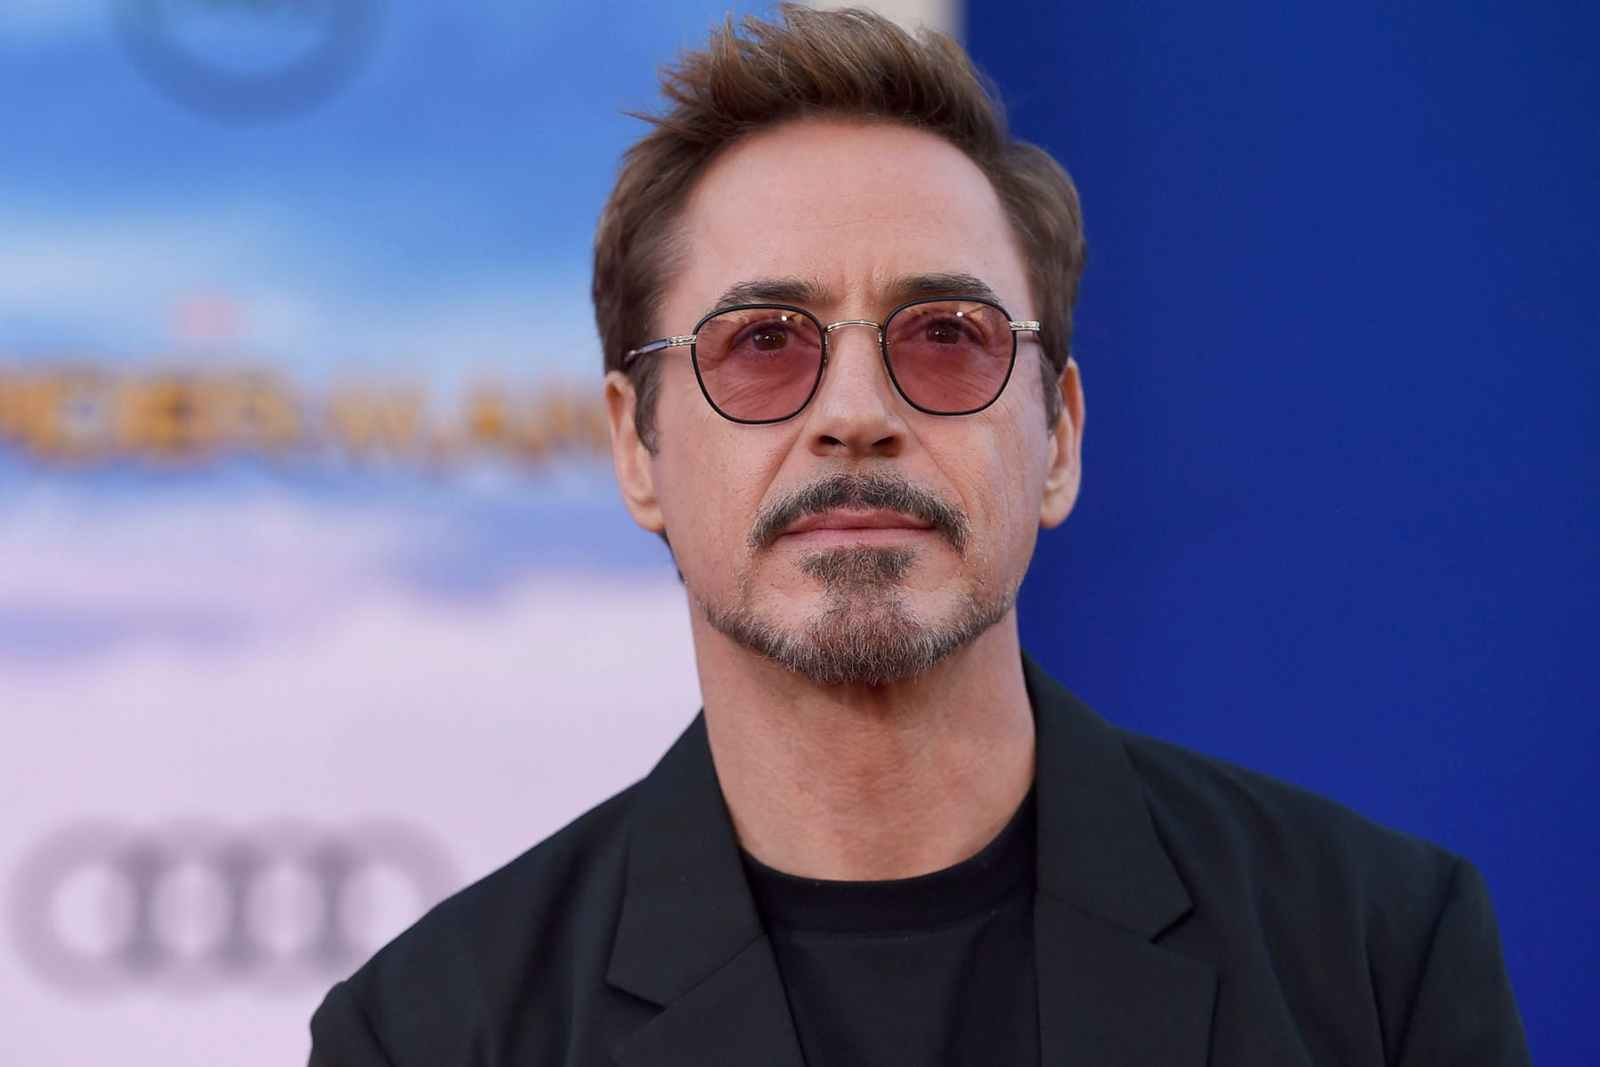 Robert Downey Jr. Eyed for Pirates of the Caribbean 6